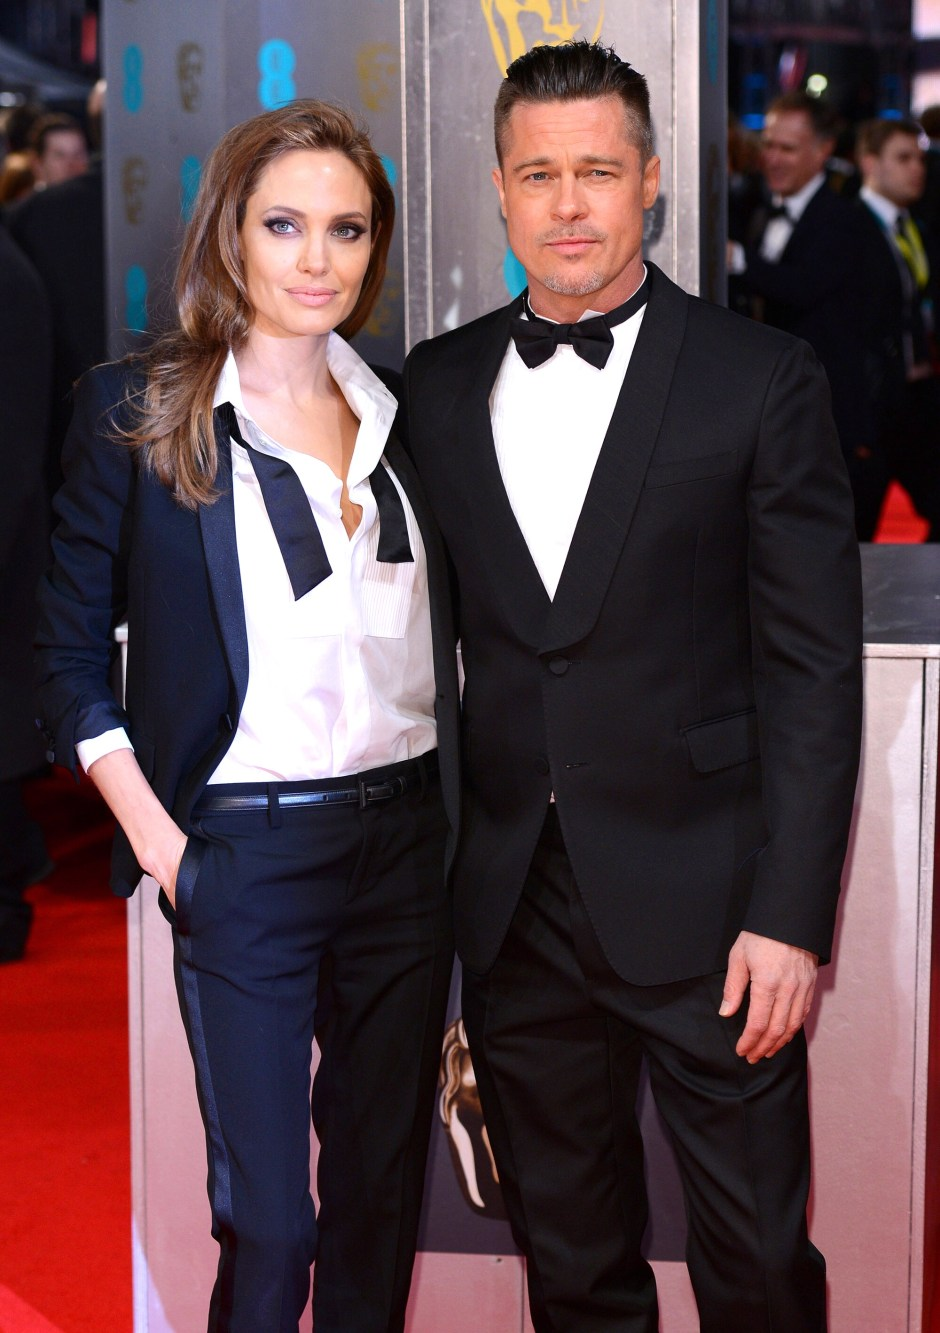 Why Angelina Jolie's Waging War Over Custody With Brad Pitt: 'She Sees the Writing on the Wall'